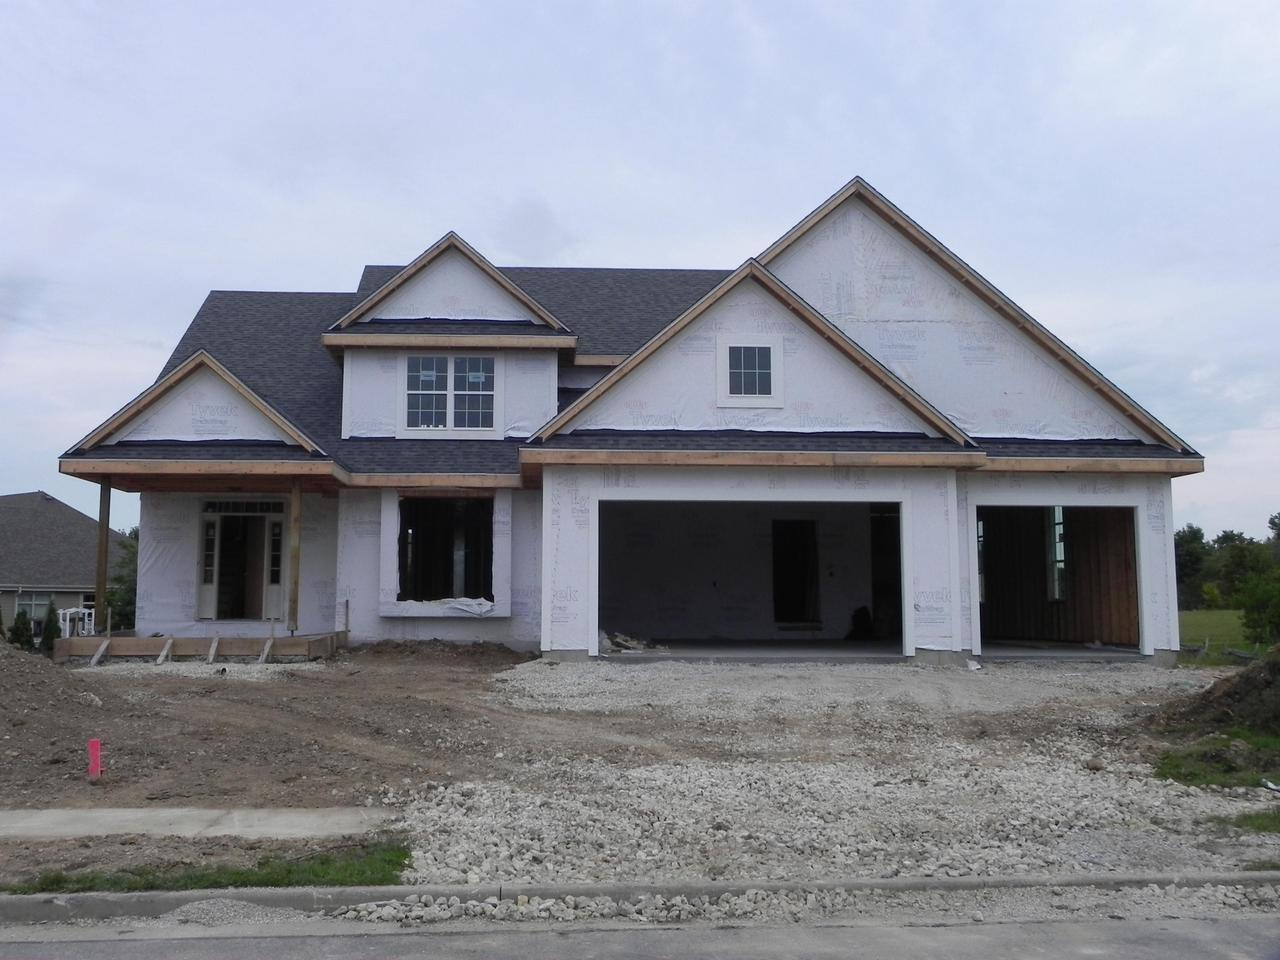 New Construction open concept four bedroom home with four car attached garage!   Huge living room with GFP and 9 foot ceilings 1st floor.  Working eat in kitchen with walk in pantry, granite counters, flush Island, tile back splash & tons of cabinets.  Main level formal dining room with Fr. doors.  Mud room offering lockers and full laundry room. large master bedroom with his/her walk in closets.   Master bath offering granite/Solid surface, double vanities, walk in tile shower with 2 shower heads! Three other spacious bedrooms and large closets.  Lower level has egress window system, full bath rough.  Country living on municipal sewer and water!!